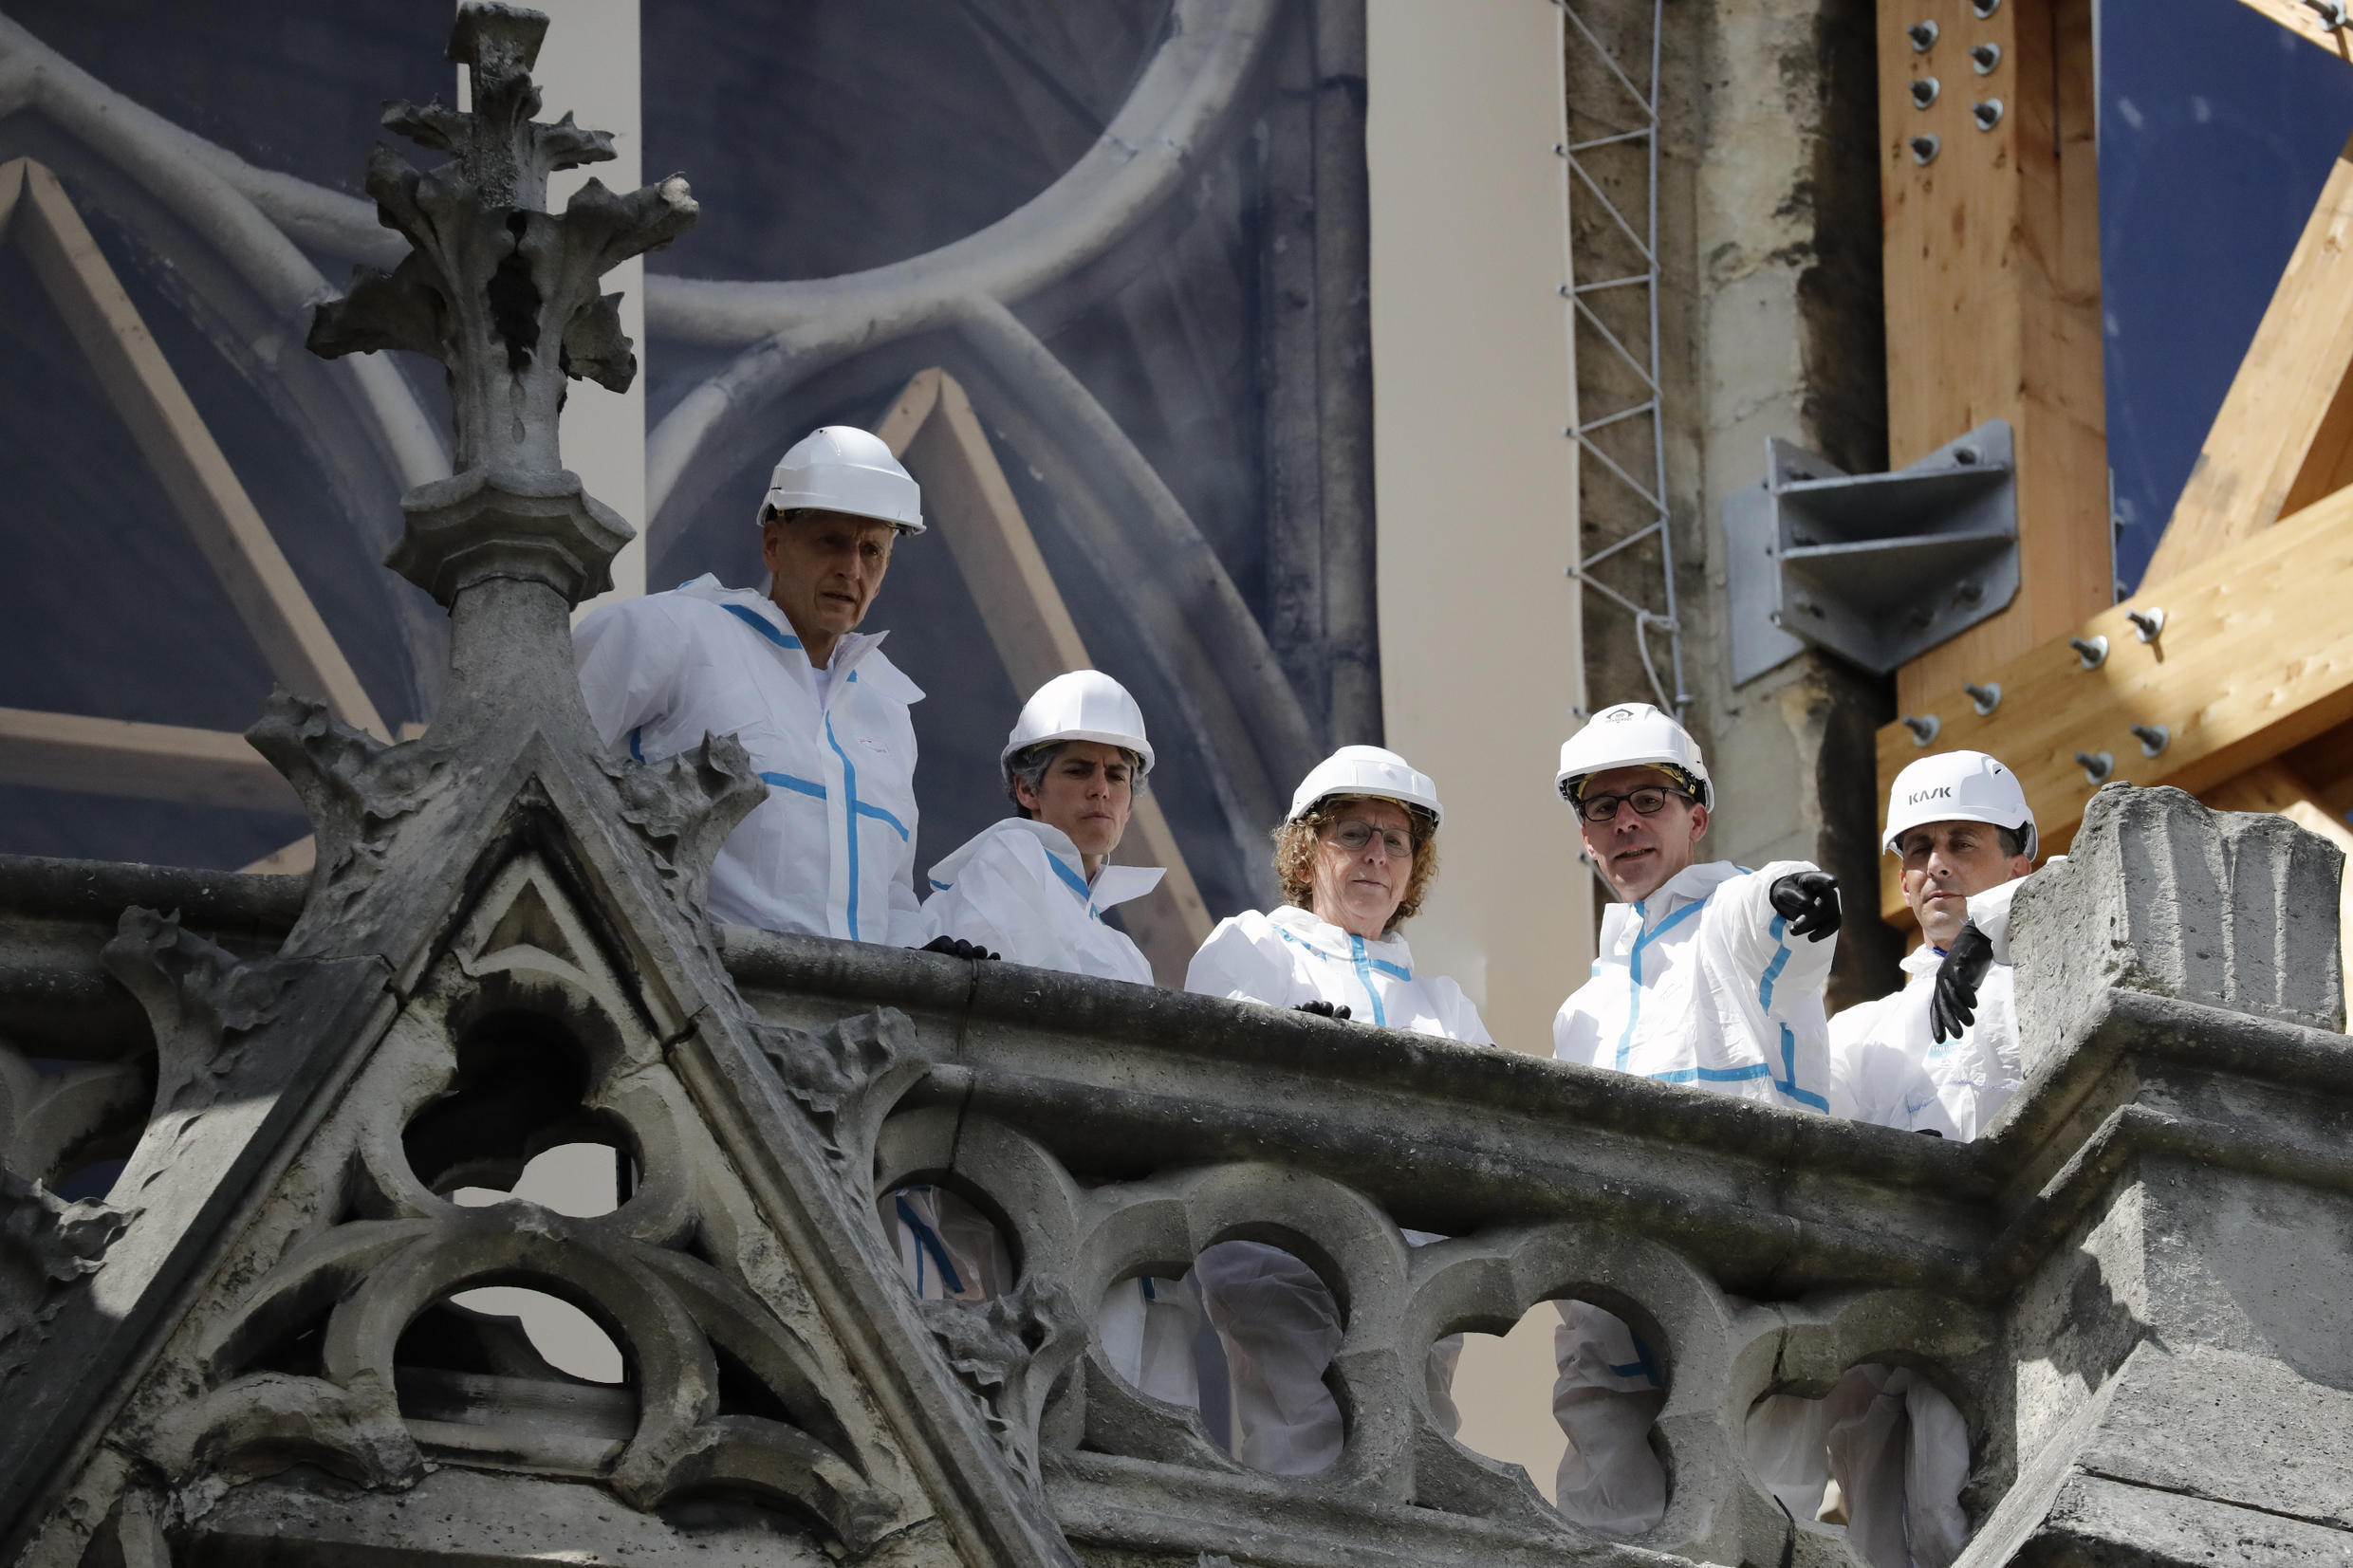 Minister for Labour, Muriel Penicaud, on the balcony of Notre Dame